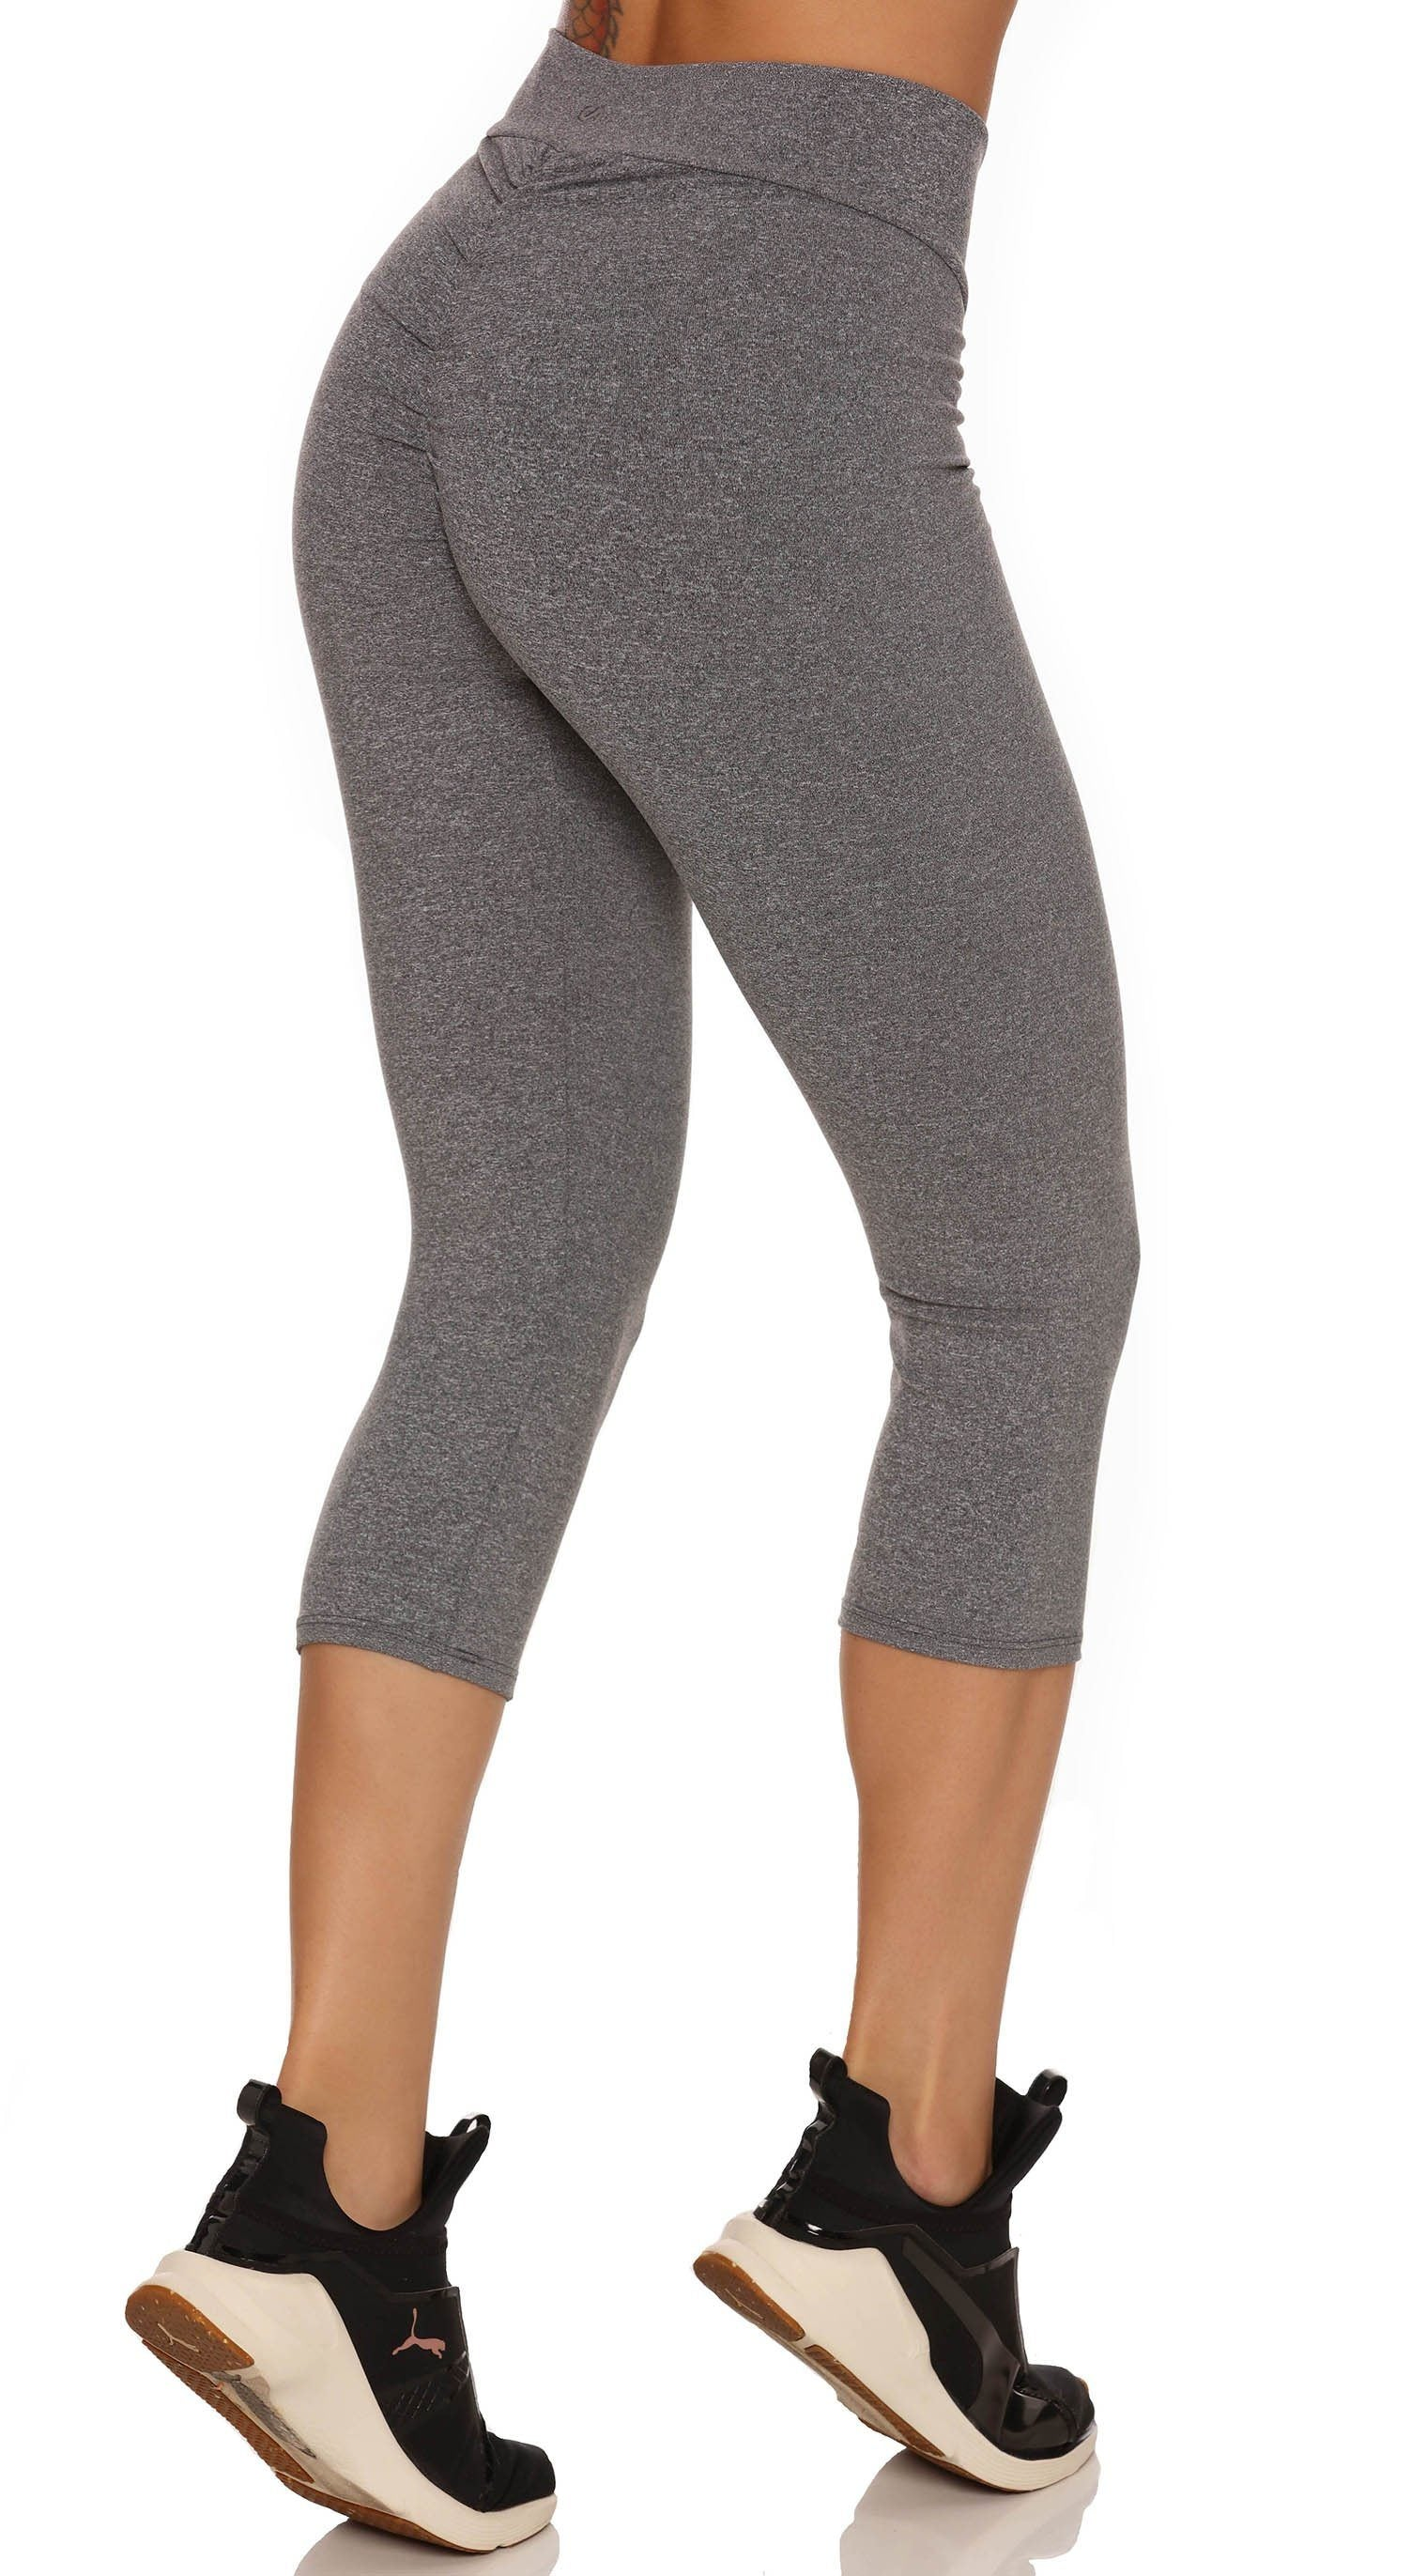 b446d25455f17 Canoan - Brazilian Workout Capri Pants - Scrunch Booty Lift! Compression  Gray